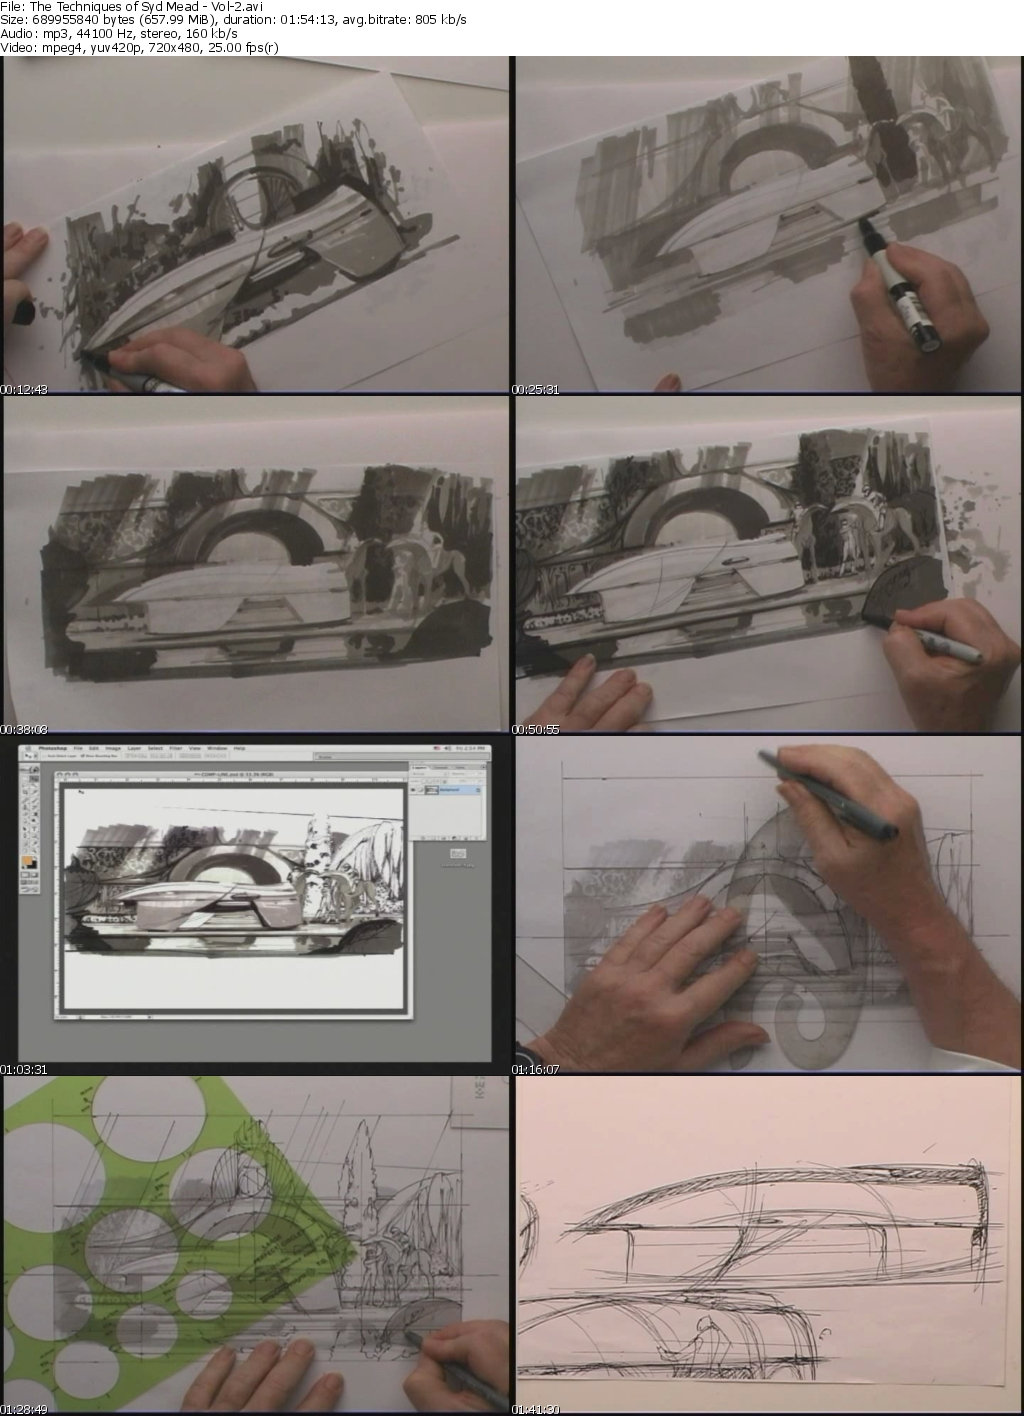 Gnomon Workshop - The Techniques of Syd Mead - Vol-2 Value Sketching (step by step)